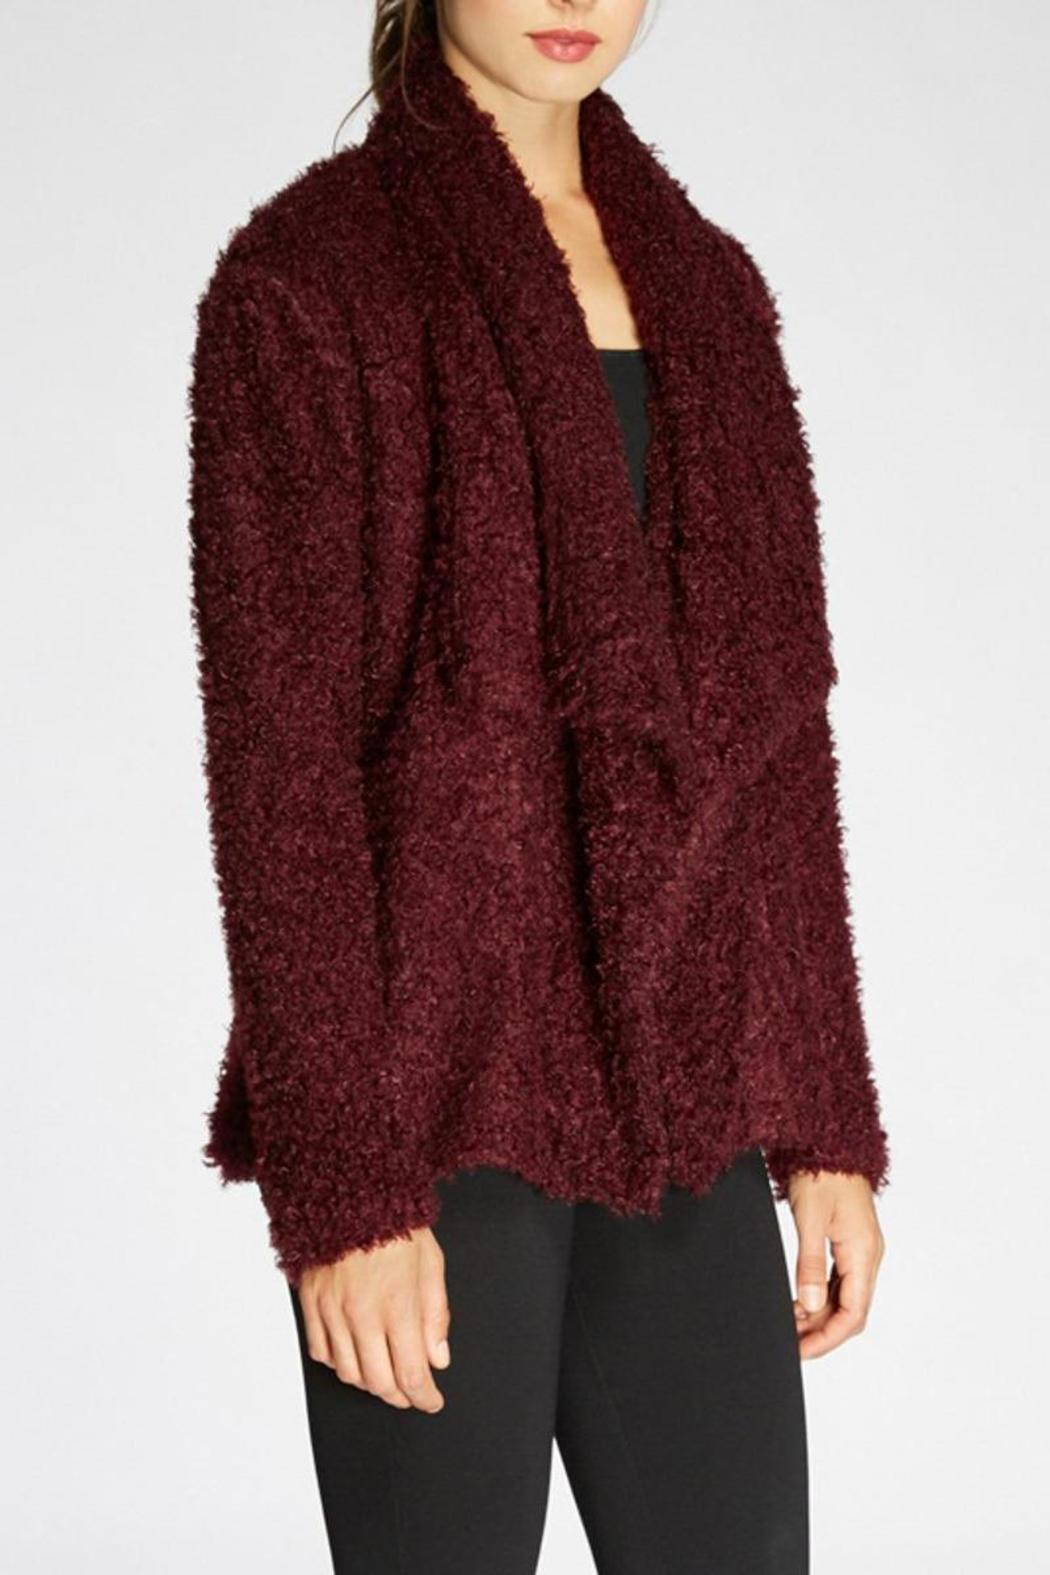 The Dressing Room Fuzzy Burgundy Jacket - Front Full Image